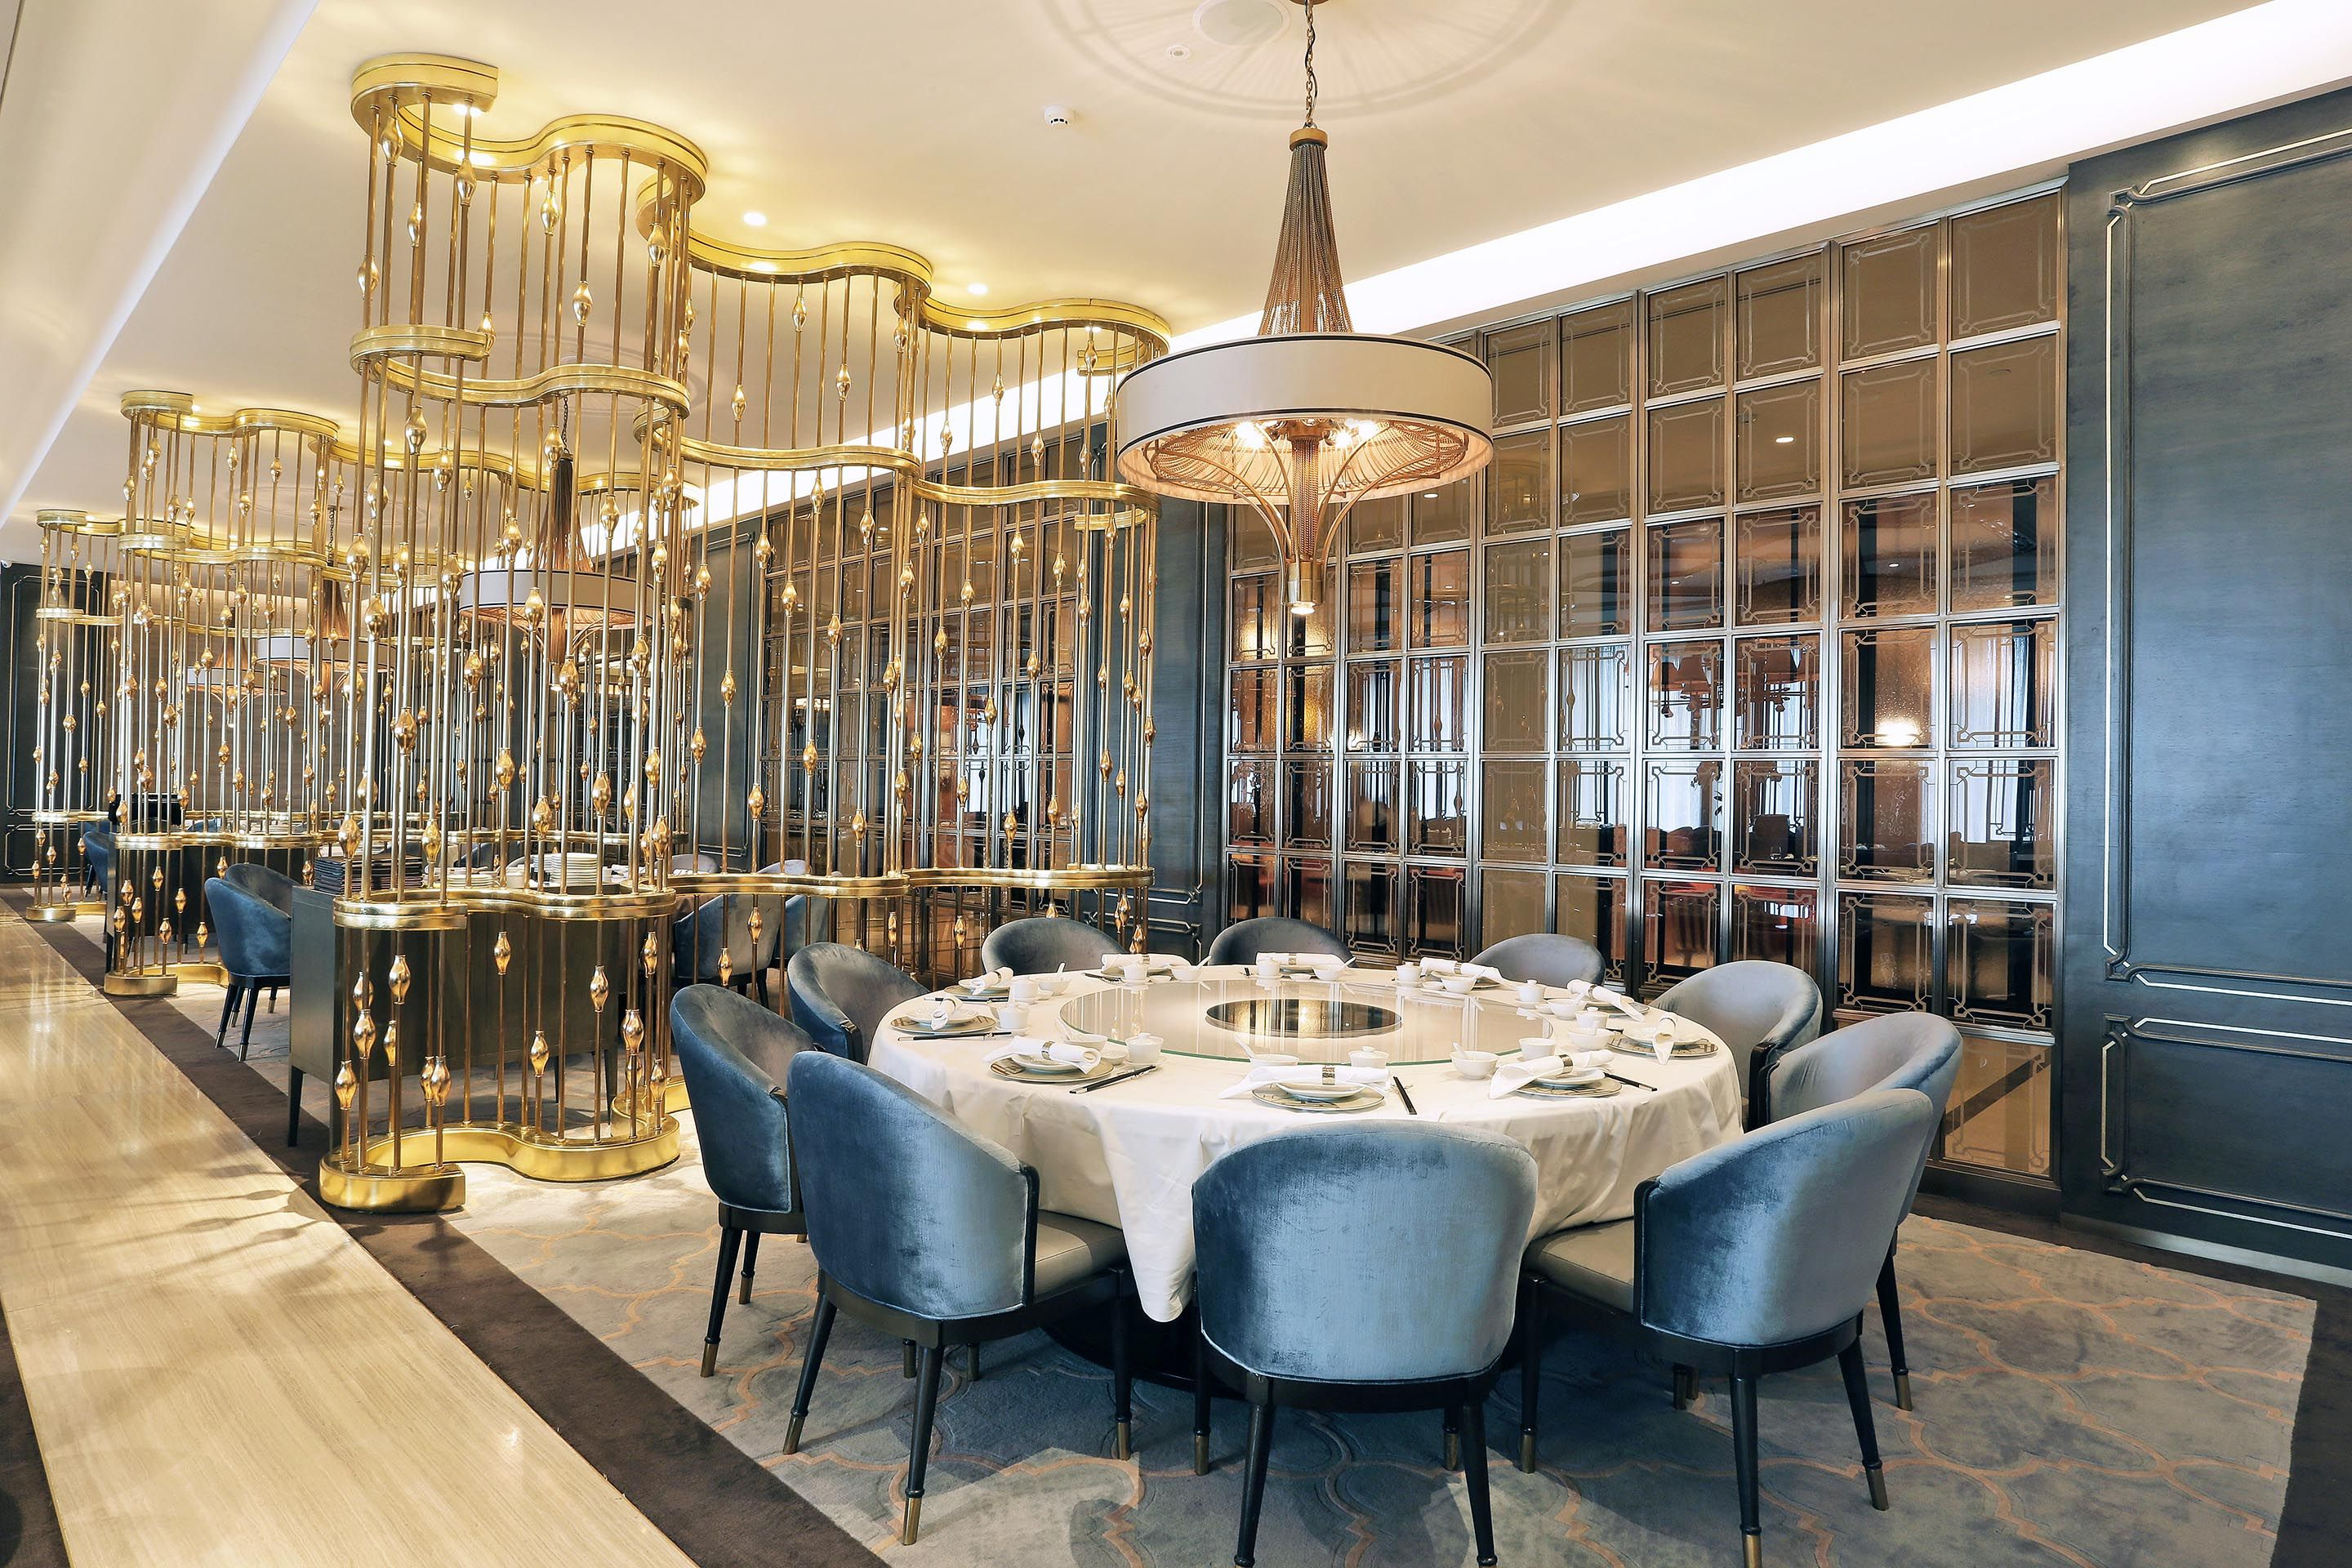 House Of Yuen By Sun Tung Lok At Fairmont Hotel Jakarta Fairmont Hotel Hotel House